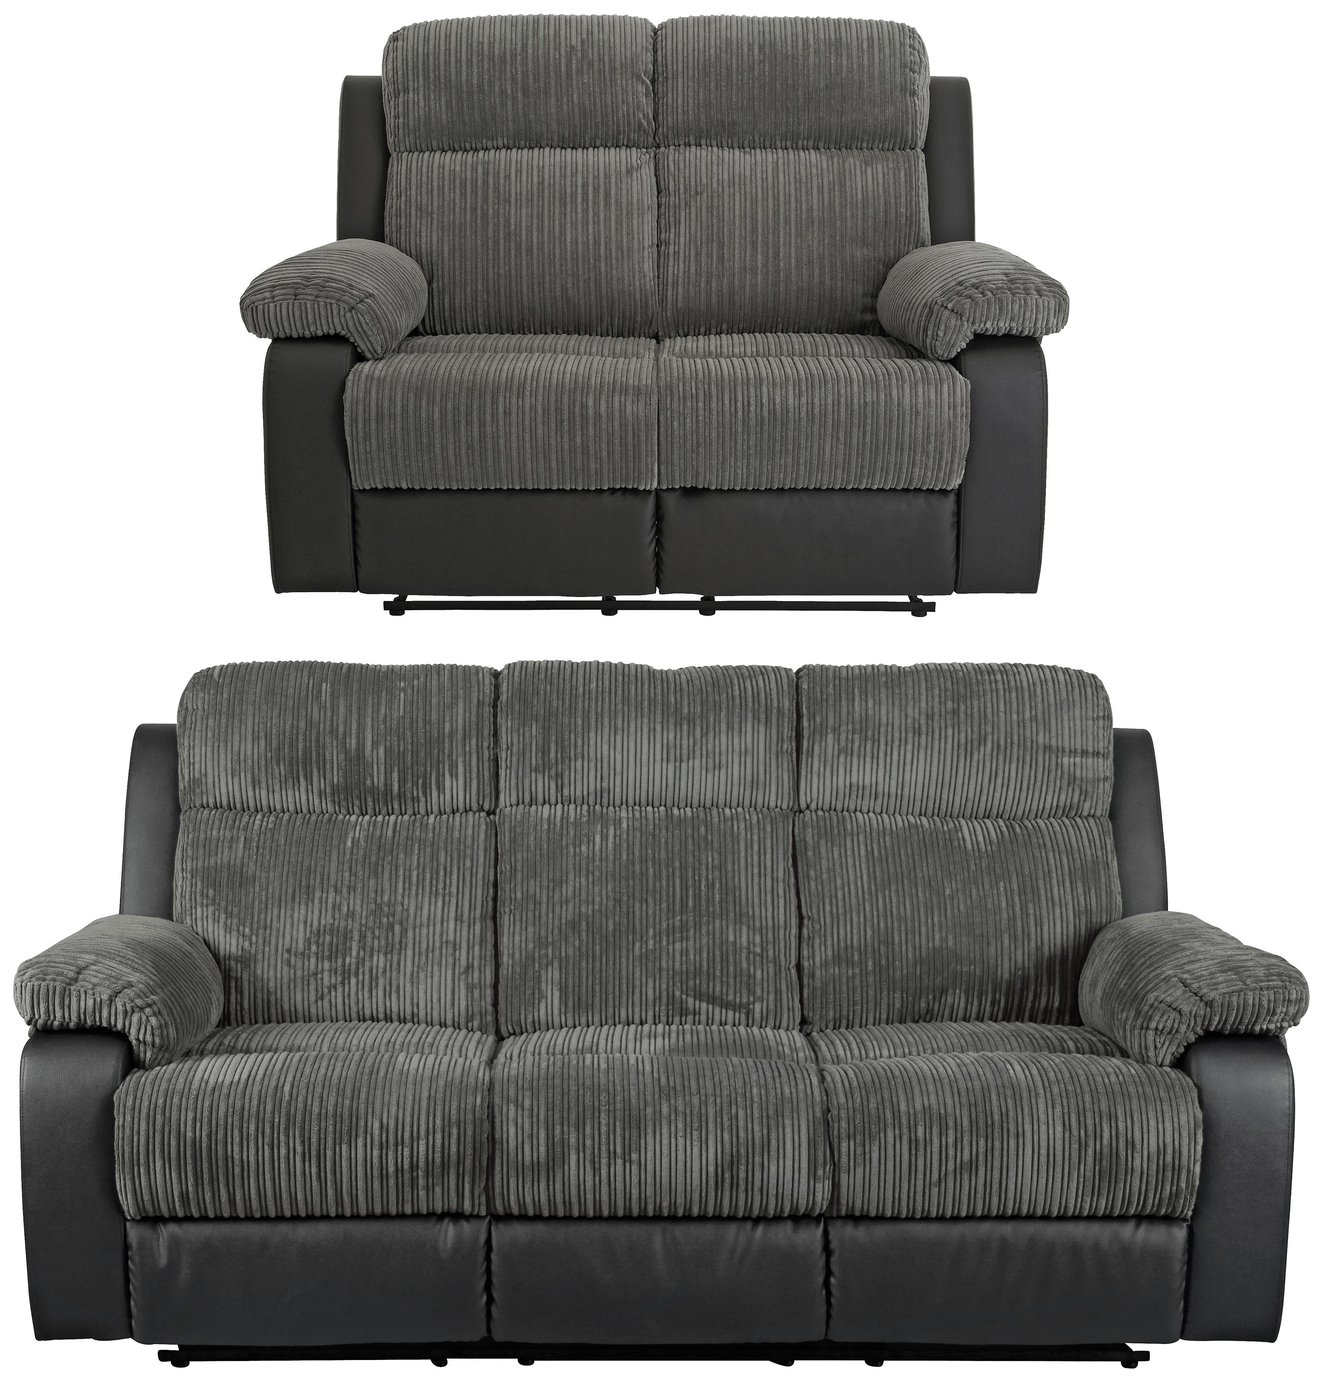 Collection Bradley 3 Seat & 2 Seat Recliner Sofas -Charcoal